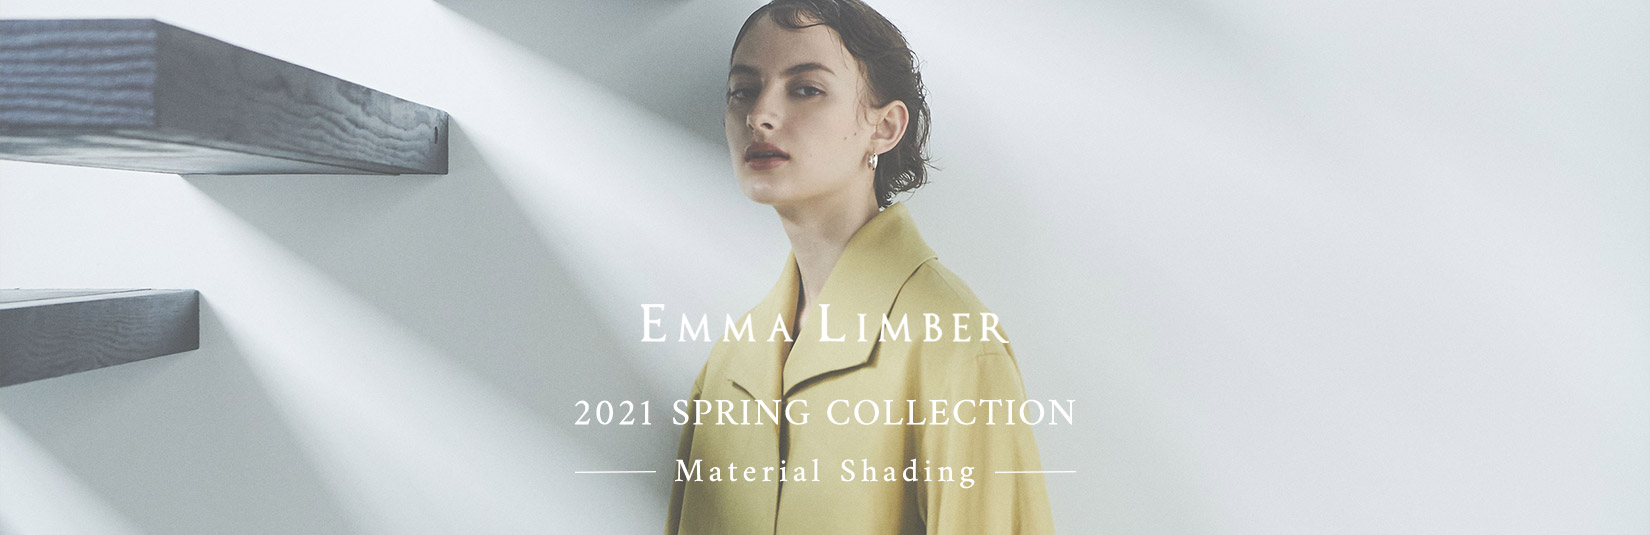 EMMA LIMBER 2021 Spring Collection Material Shading